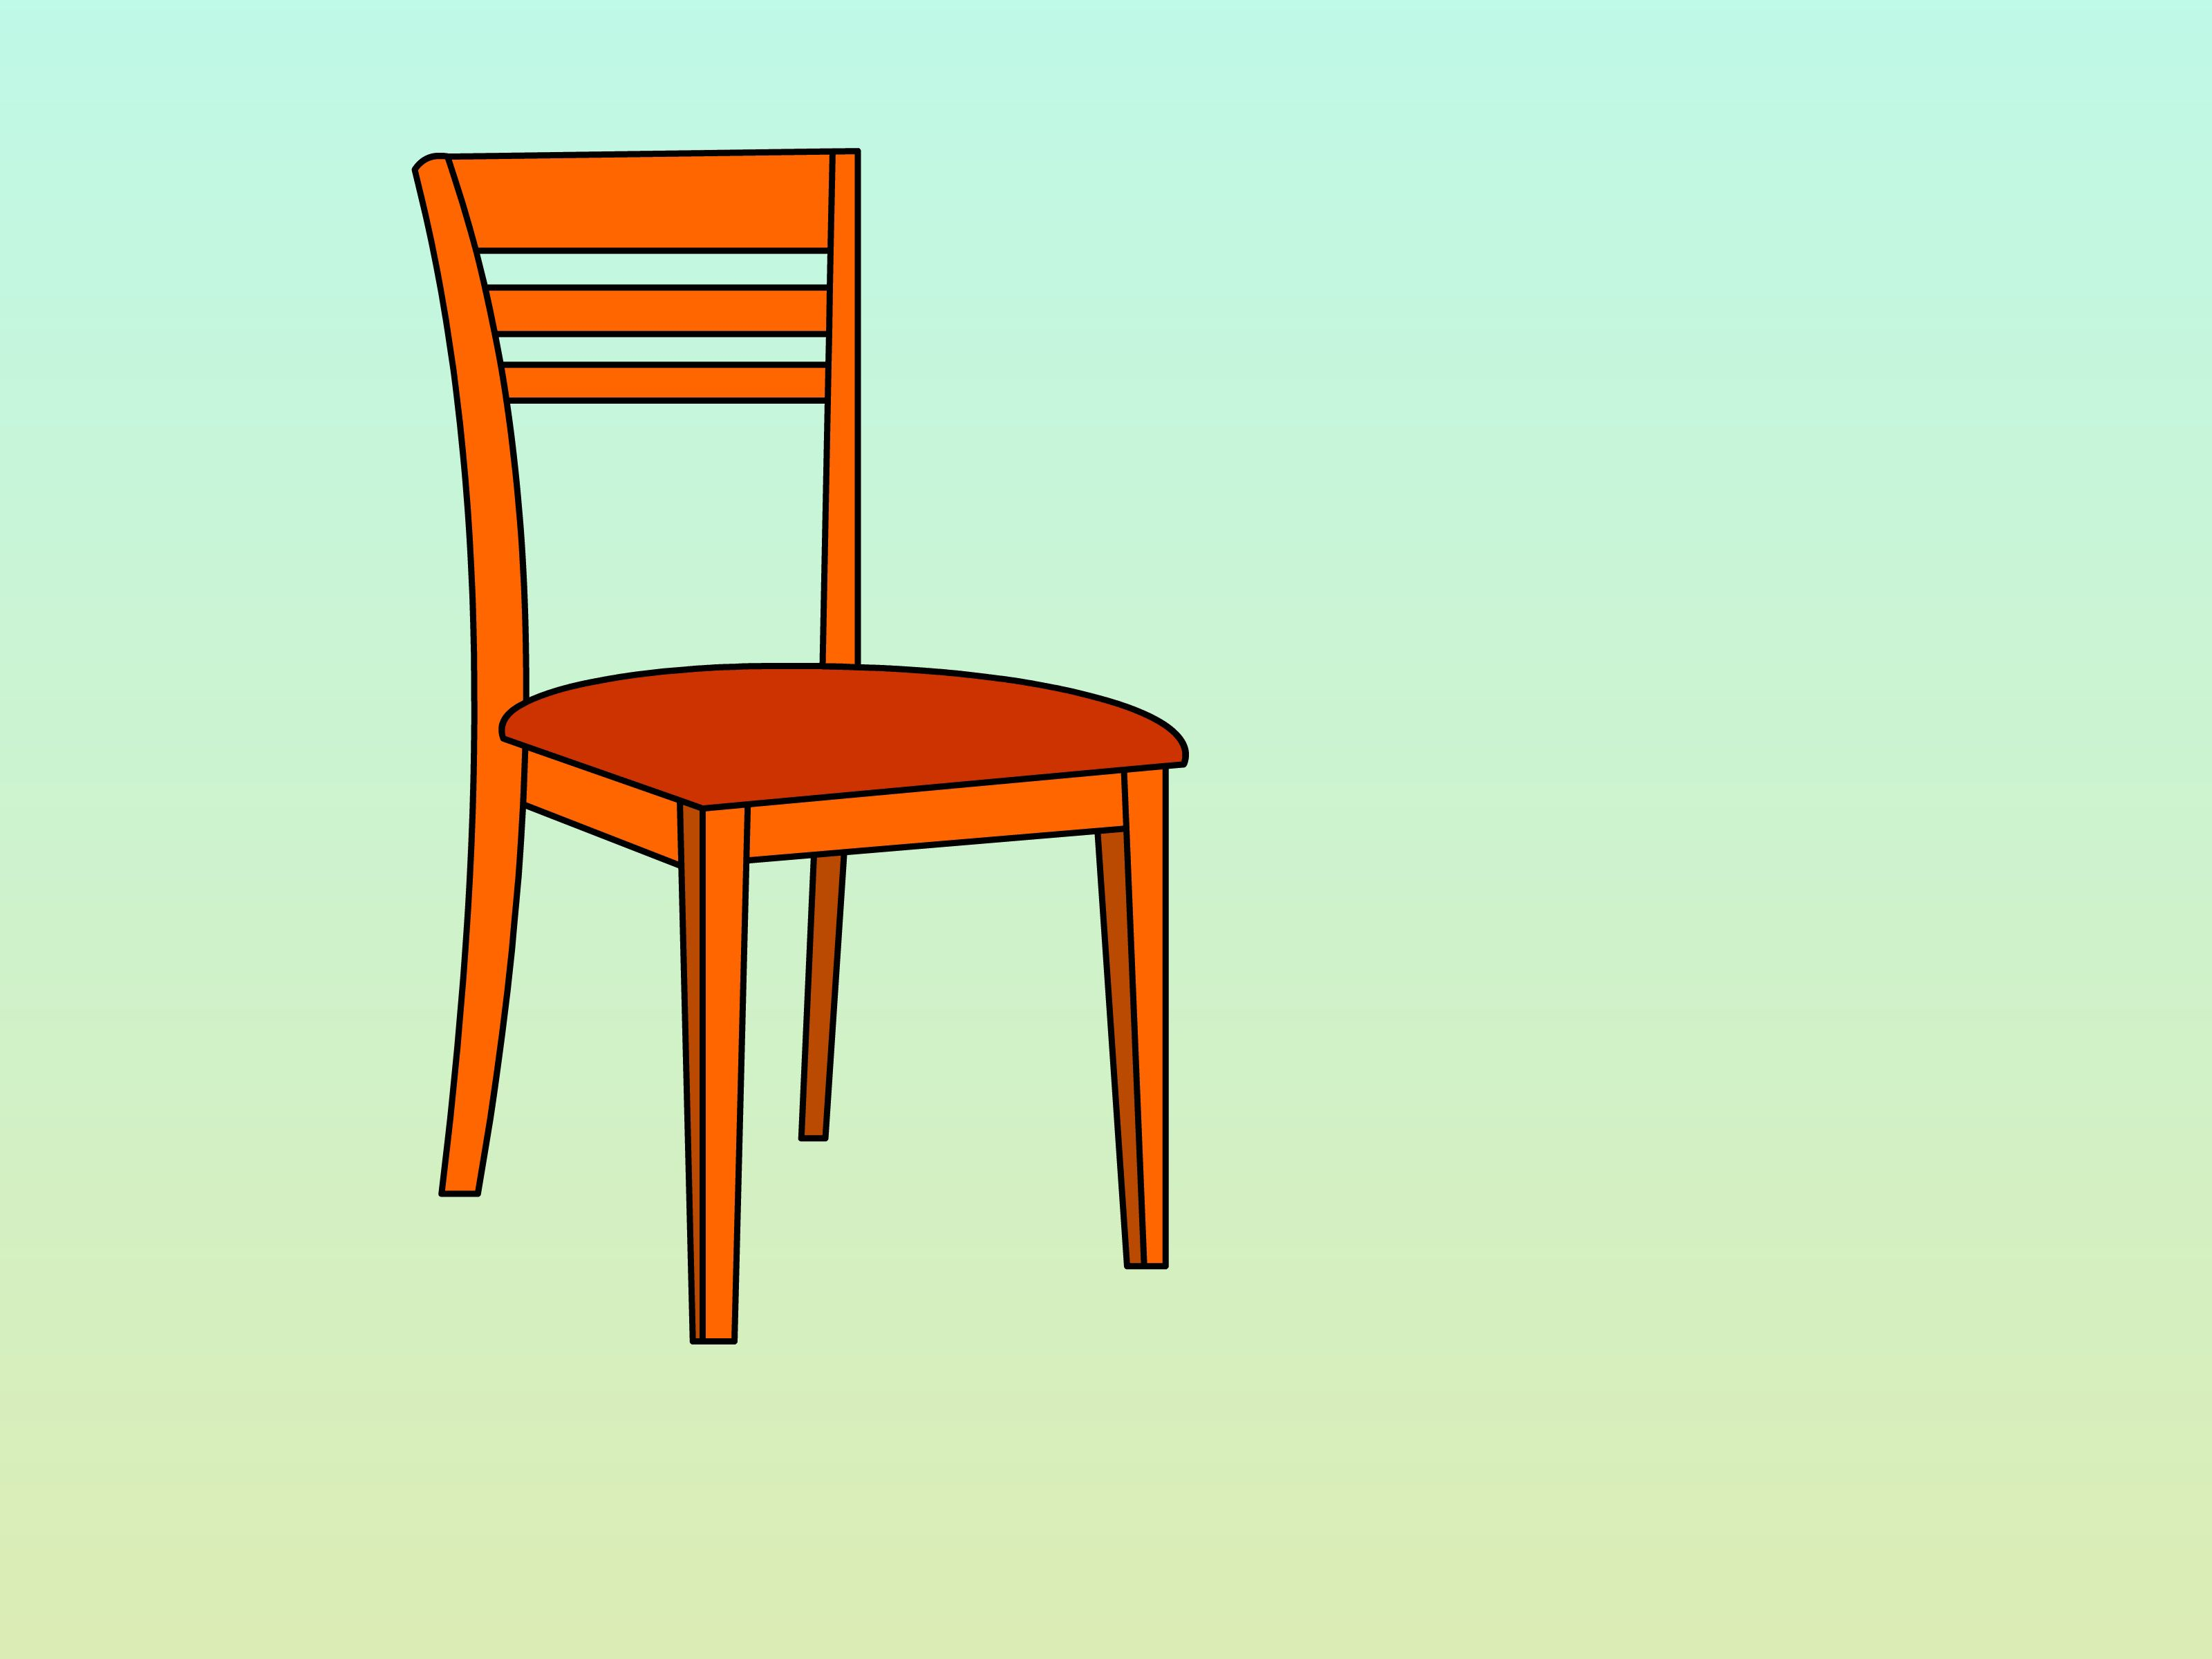 How to make a simple wooden chair - Draw A Chair